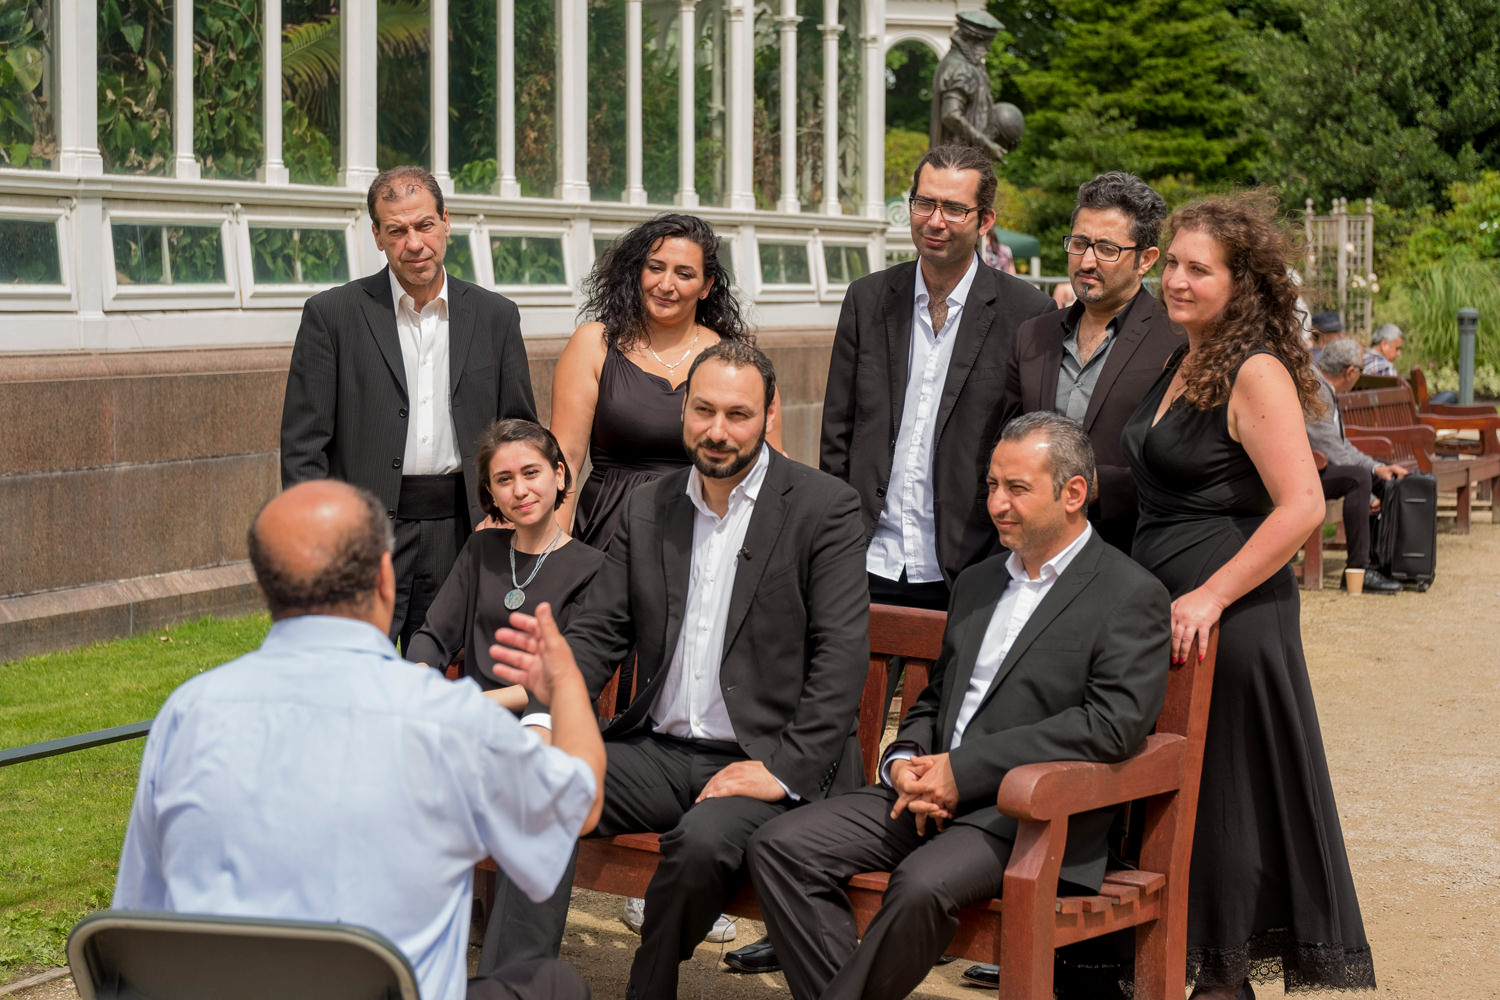 A group of men and women in smart, black clothes with a man sitting on a chair talking to them.